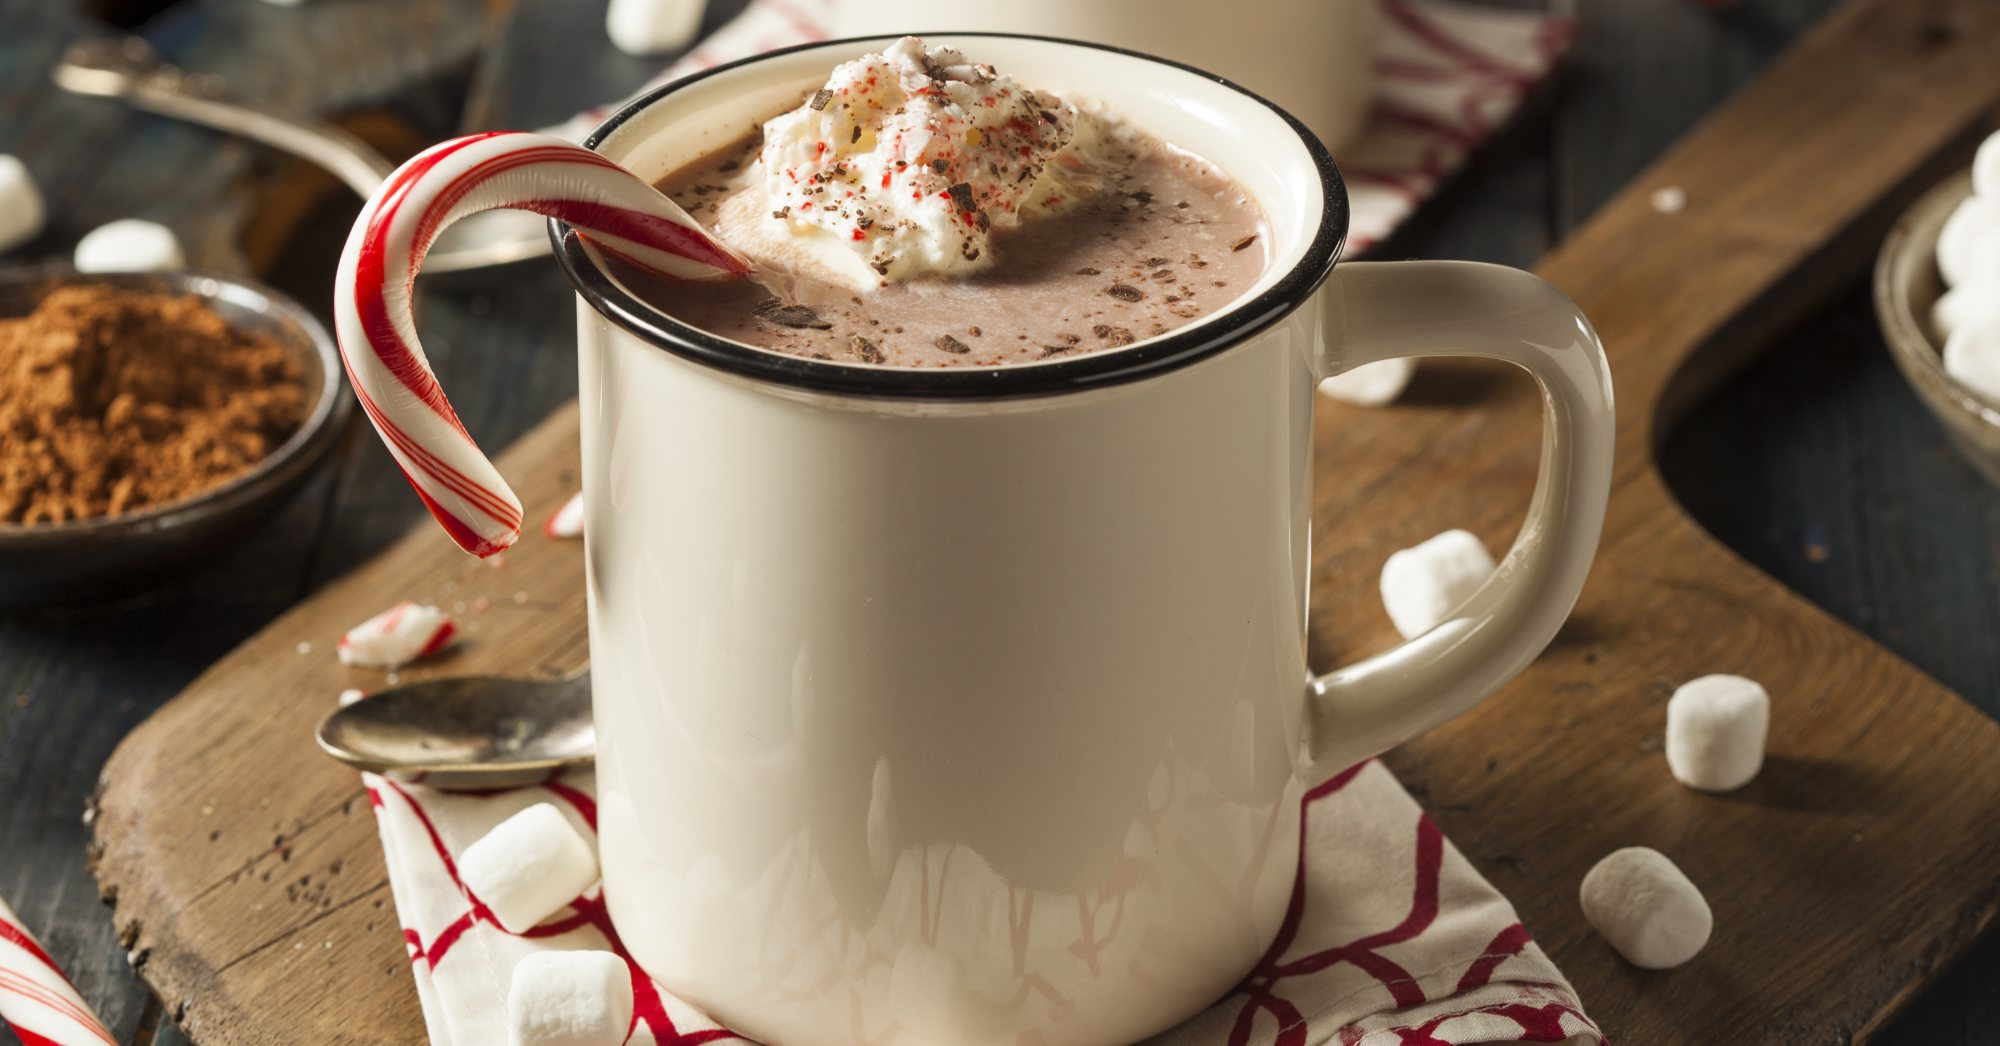 Drinks with Peppermint Schnapps Recipes – hot chocolate, peppermint, mug, marshmallows – Haskells